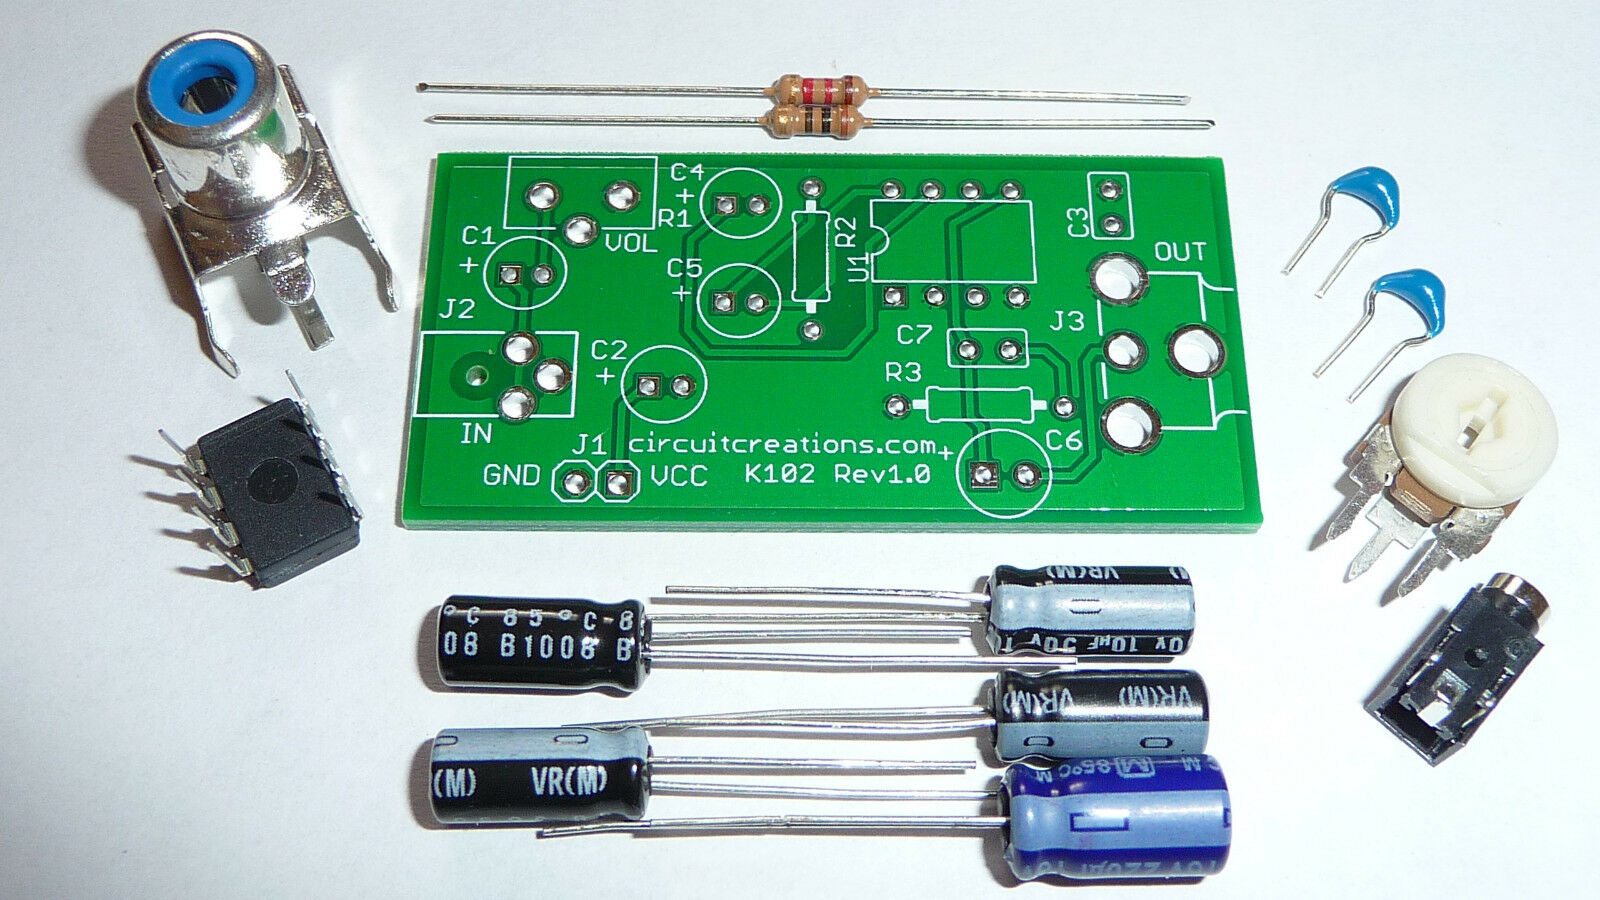 Audio Amplifier Electronic Kit W Pcb Lm386 With Adjustable Gain 2 Watts Stereo Using Three 1 Of 1only 4 Available